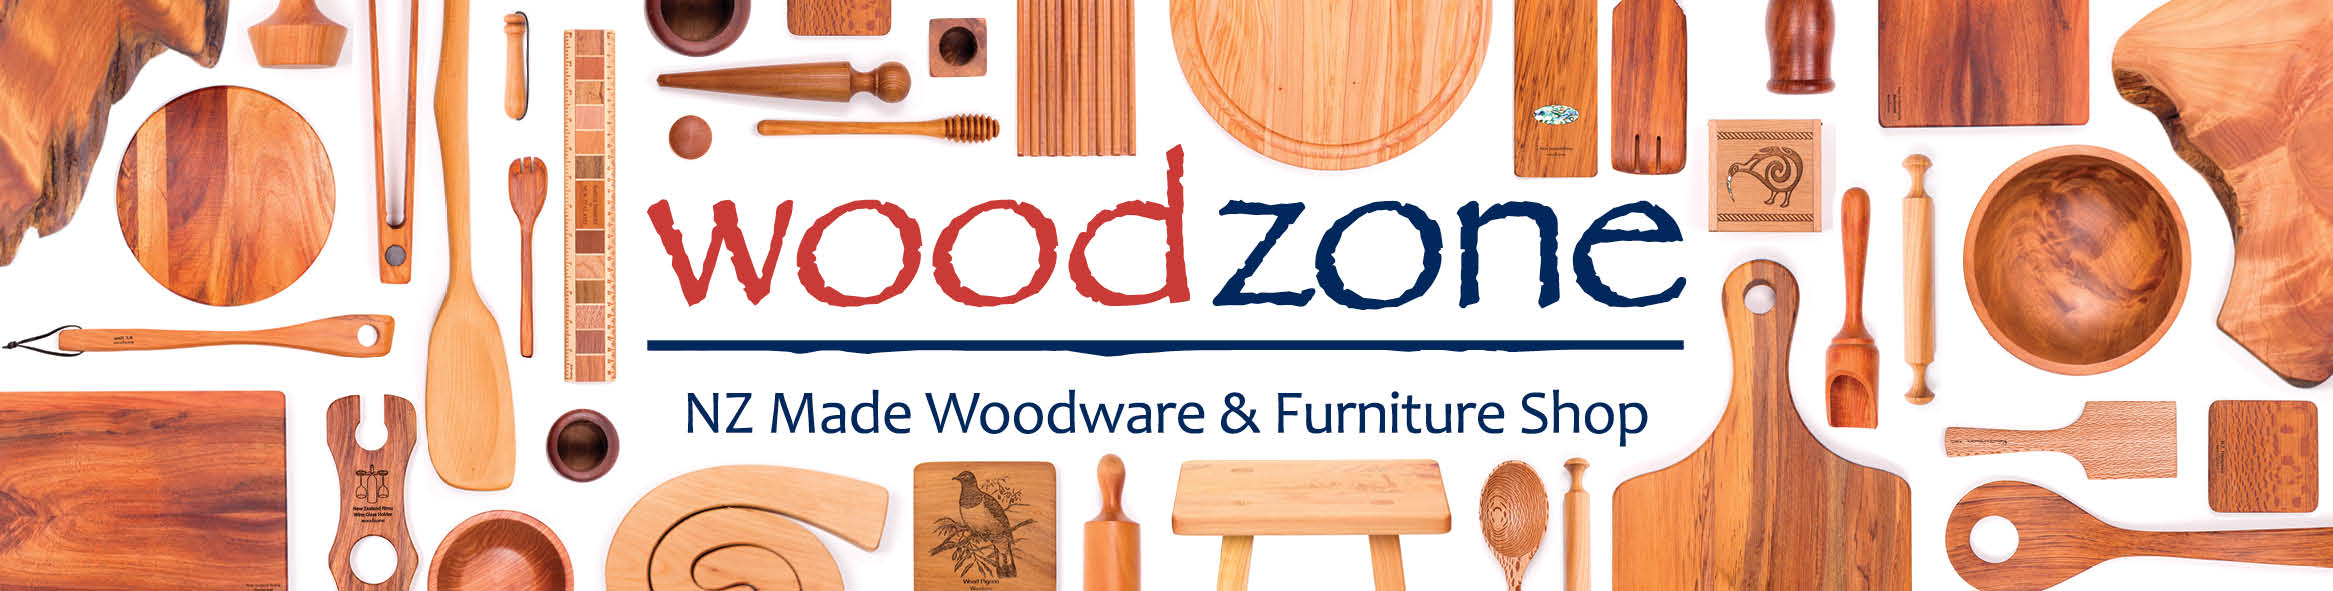 Woodzone - NZ Made Woodware & Furniture Shop